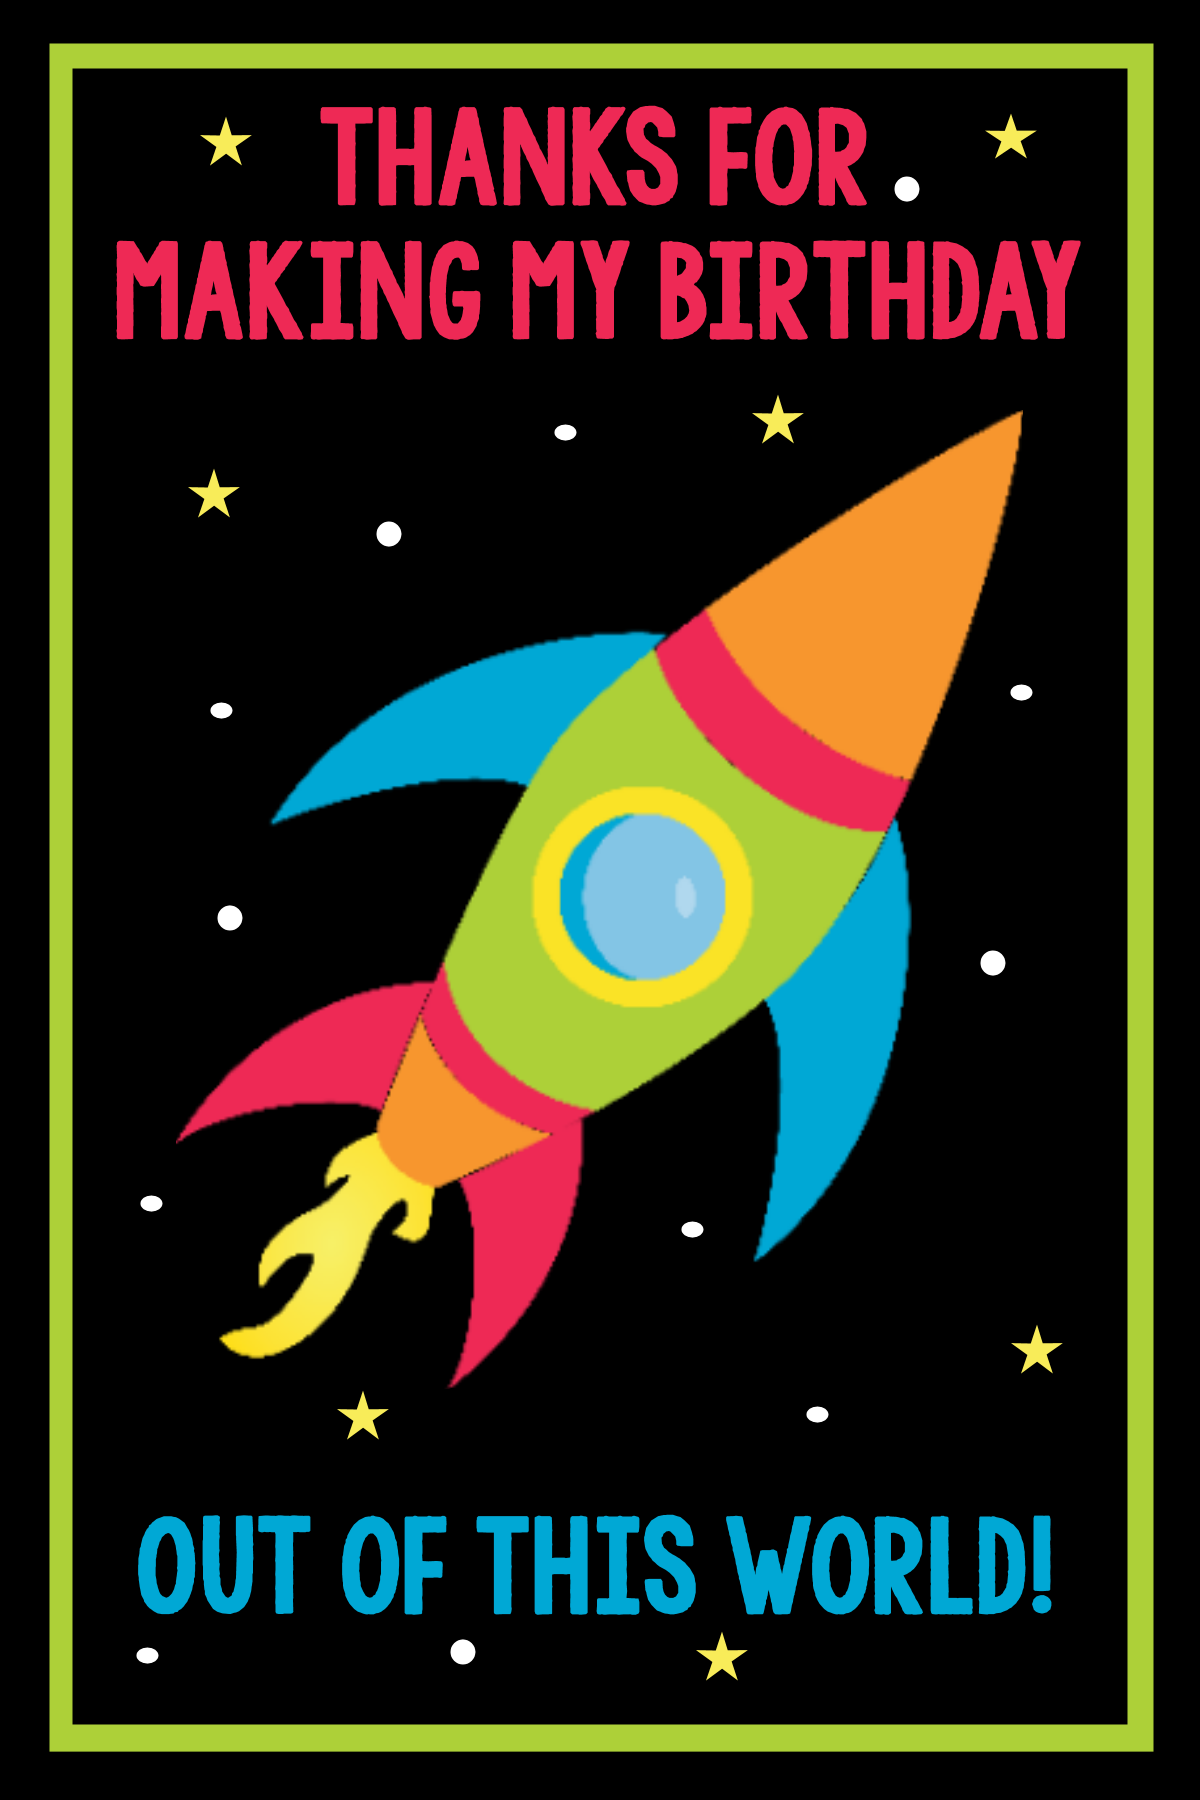 Spacebirthdaythankyoucard1 space birthday party invitations & party pack,Space Birthday Party Invitations